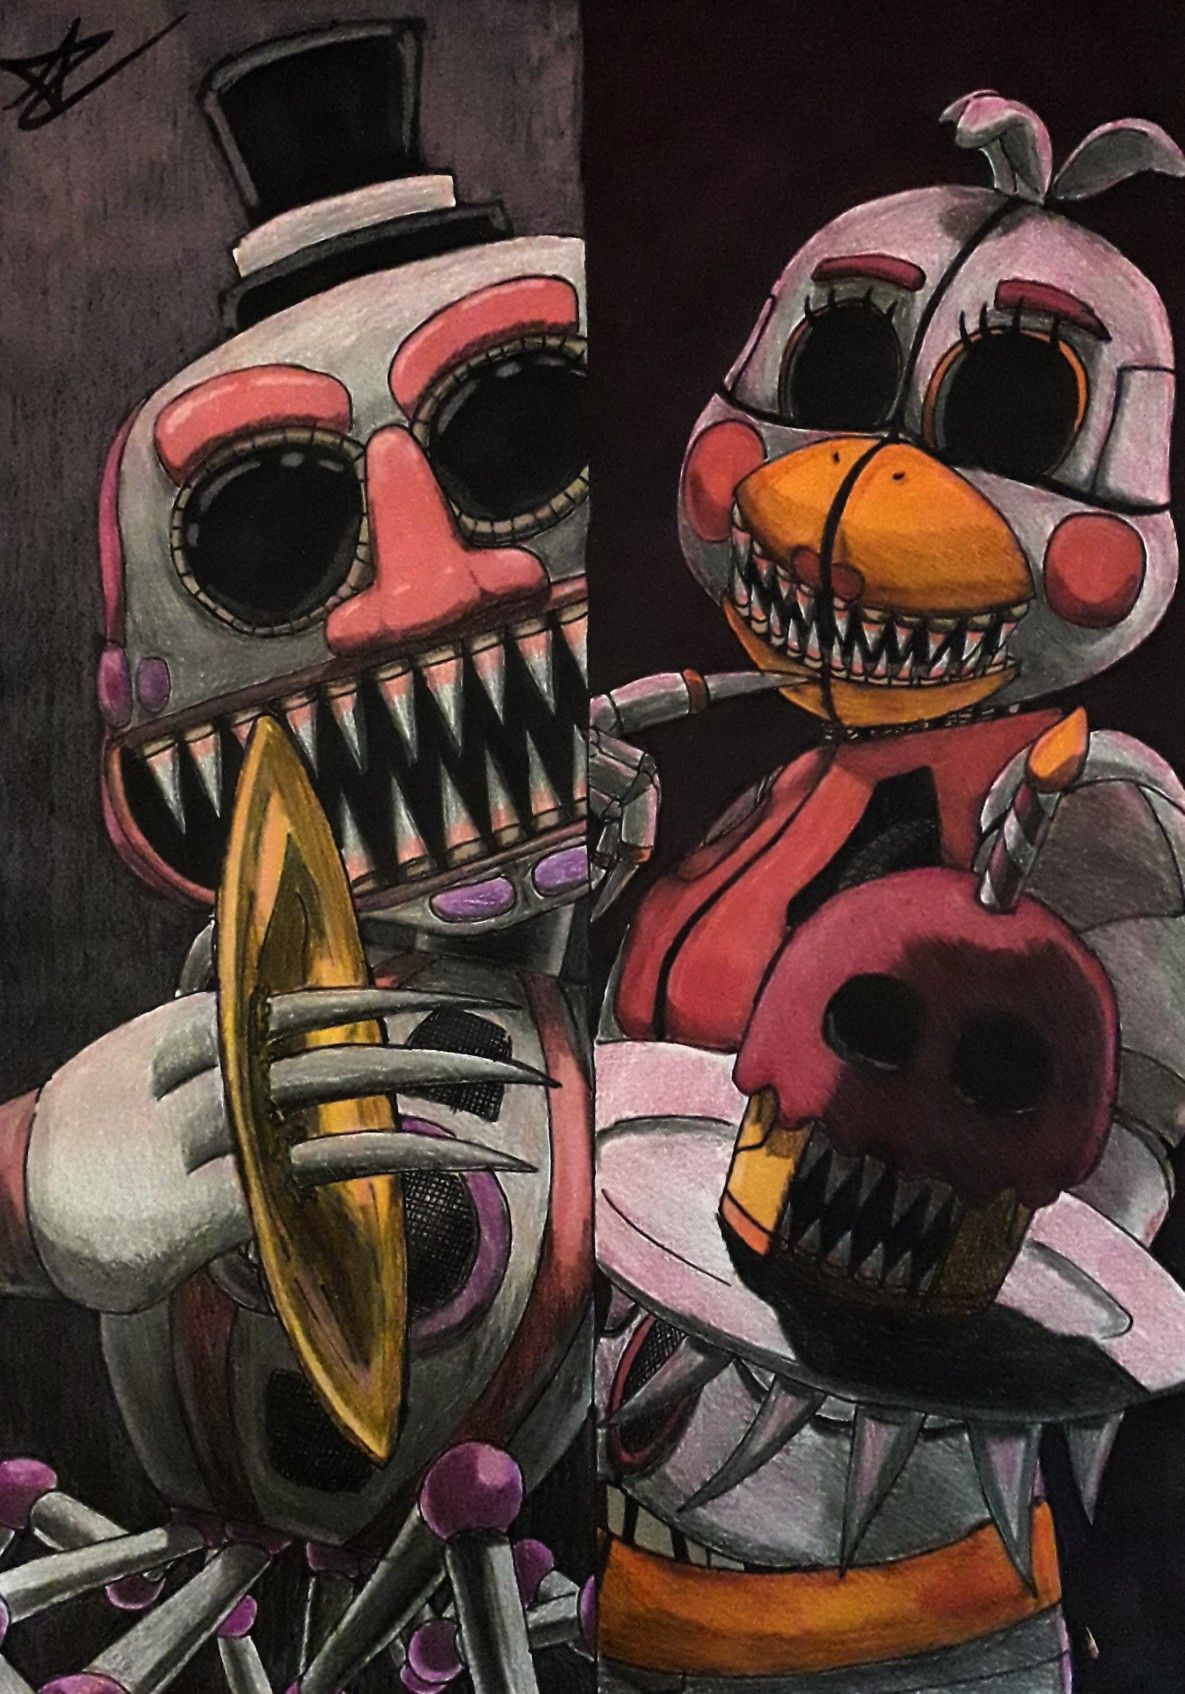 Sinister Music Man Sinister Funtime Chica For My Friend